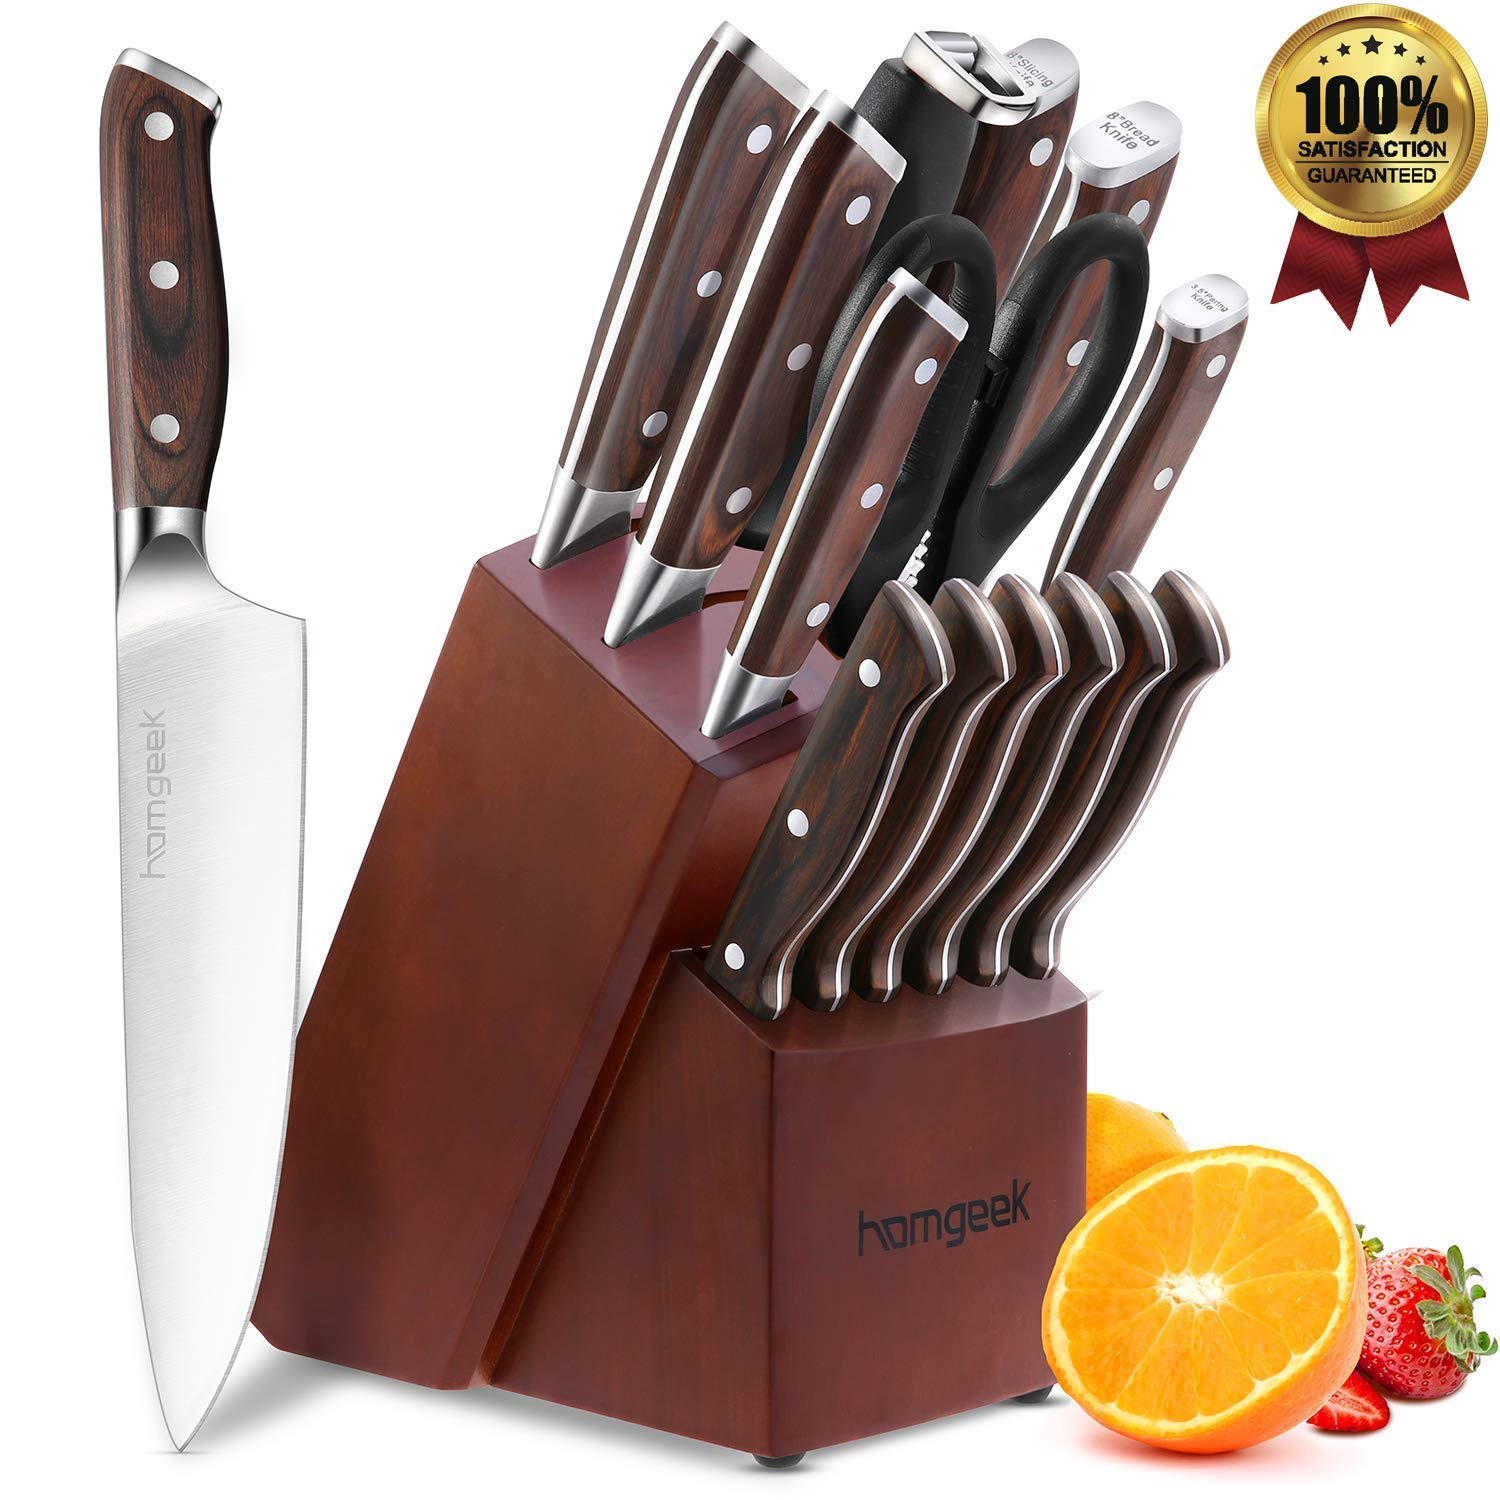 Kitchen Knife Set 15 Piece with Wooden Block Sharpener and Serrated Steak Knives, homgeek Professional High Carbon Steel Chef Knife Block Set Full-Tang Forged, German 1.4116 Steel, Pakkawood Handle by homgeek (Image #1)